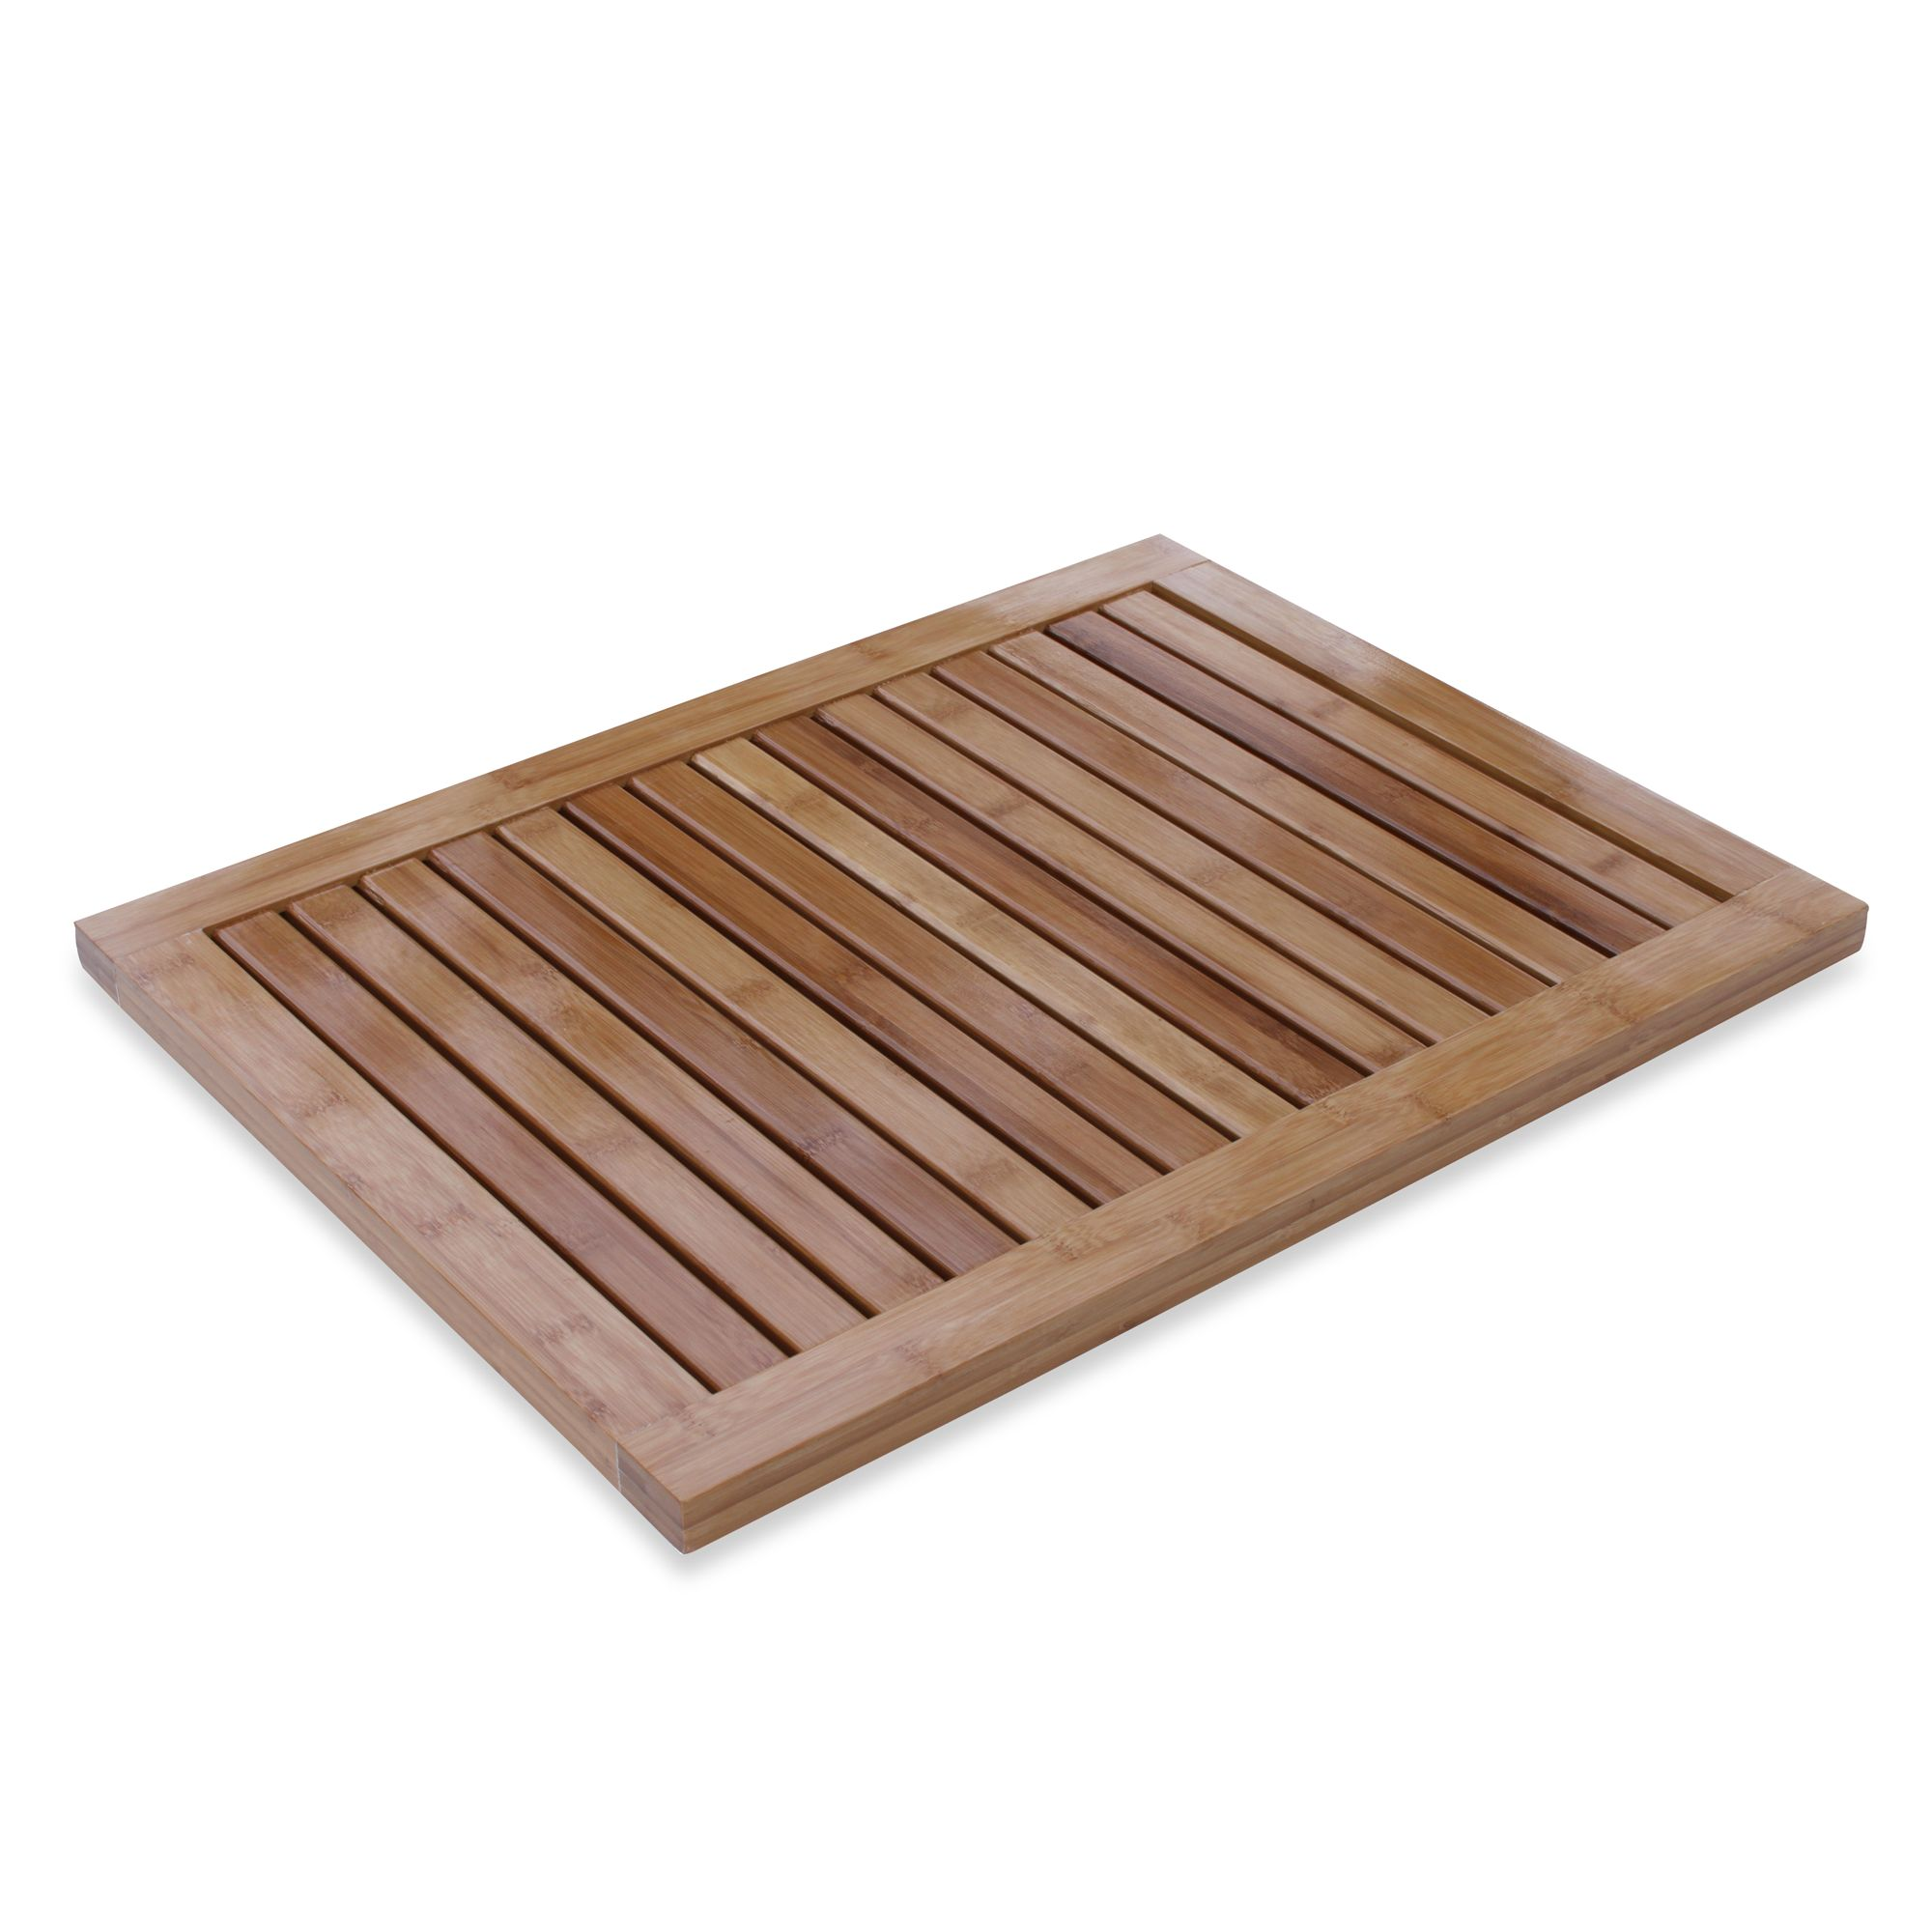 bath tub mats, teak shower & rubber mats - bed bath & beyond